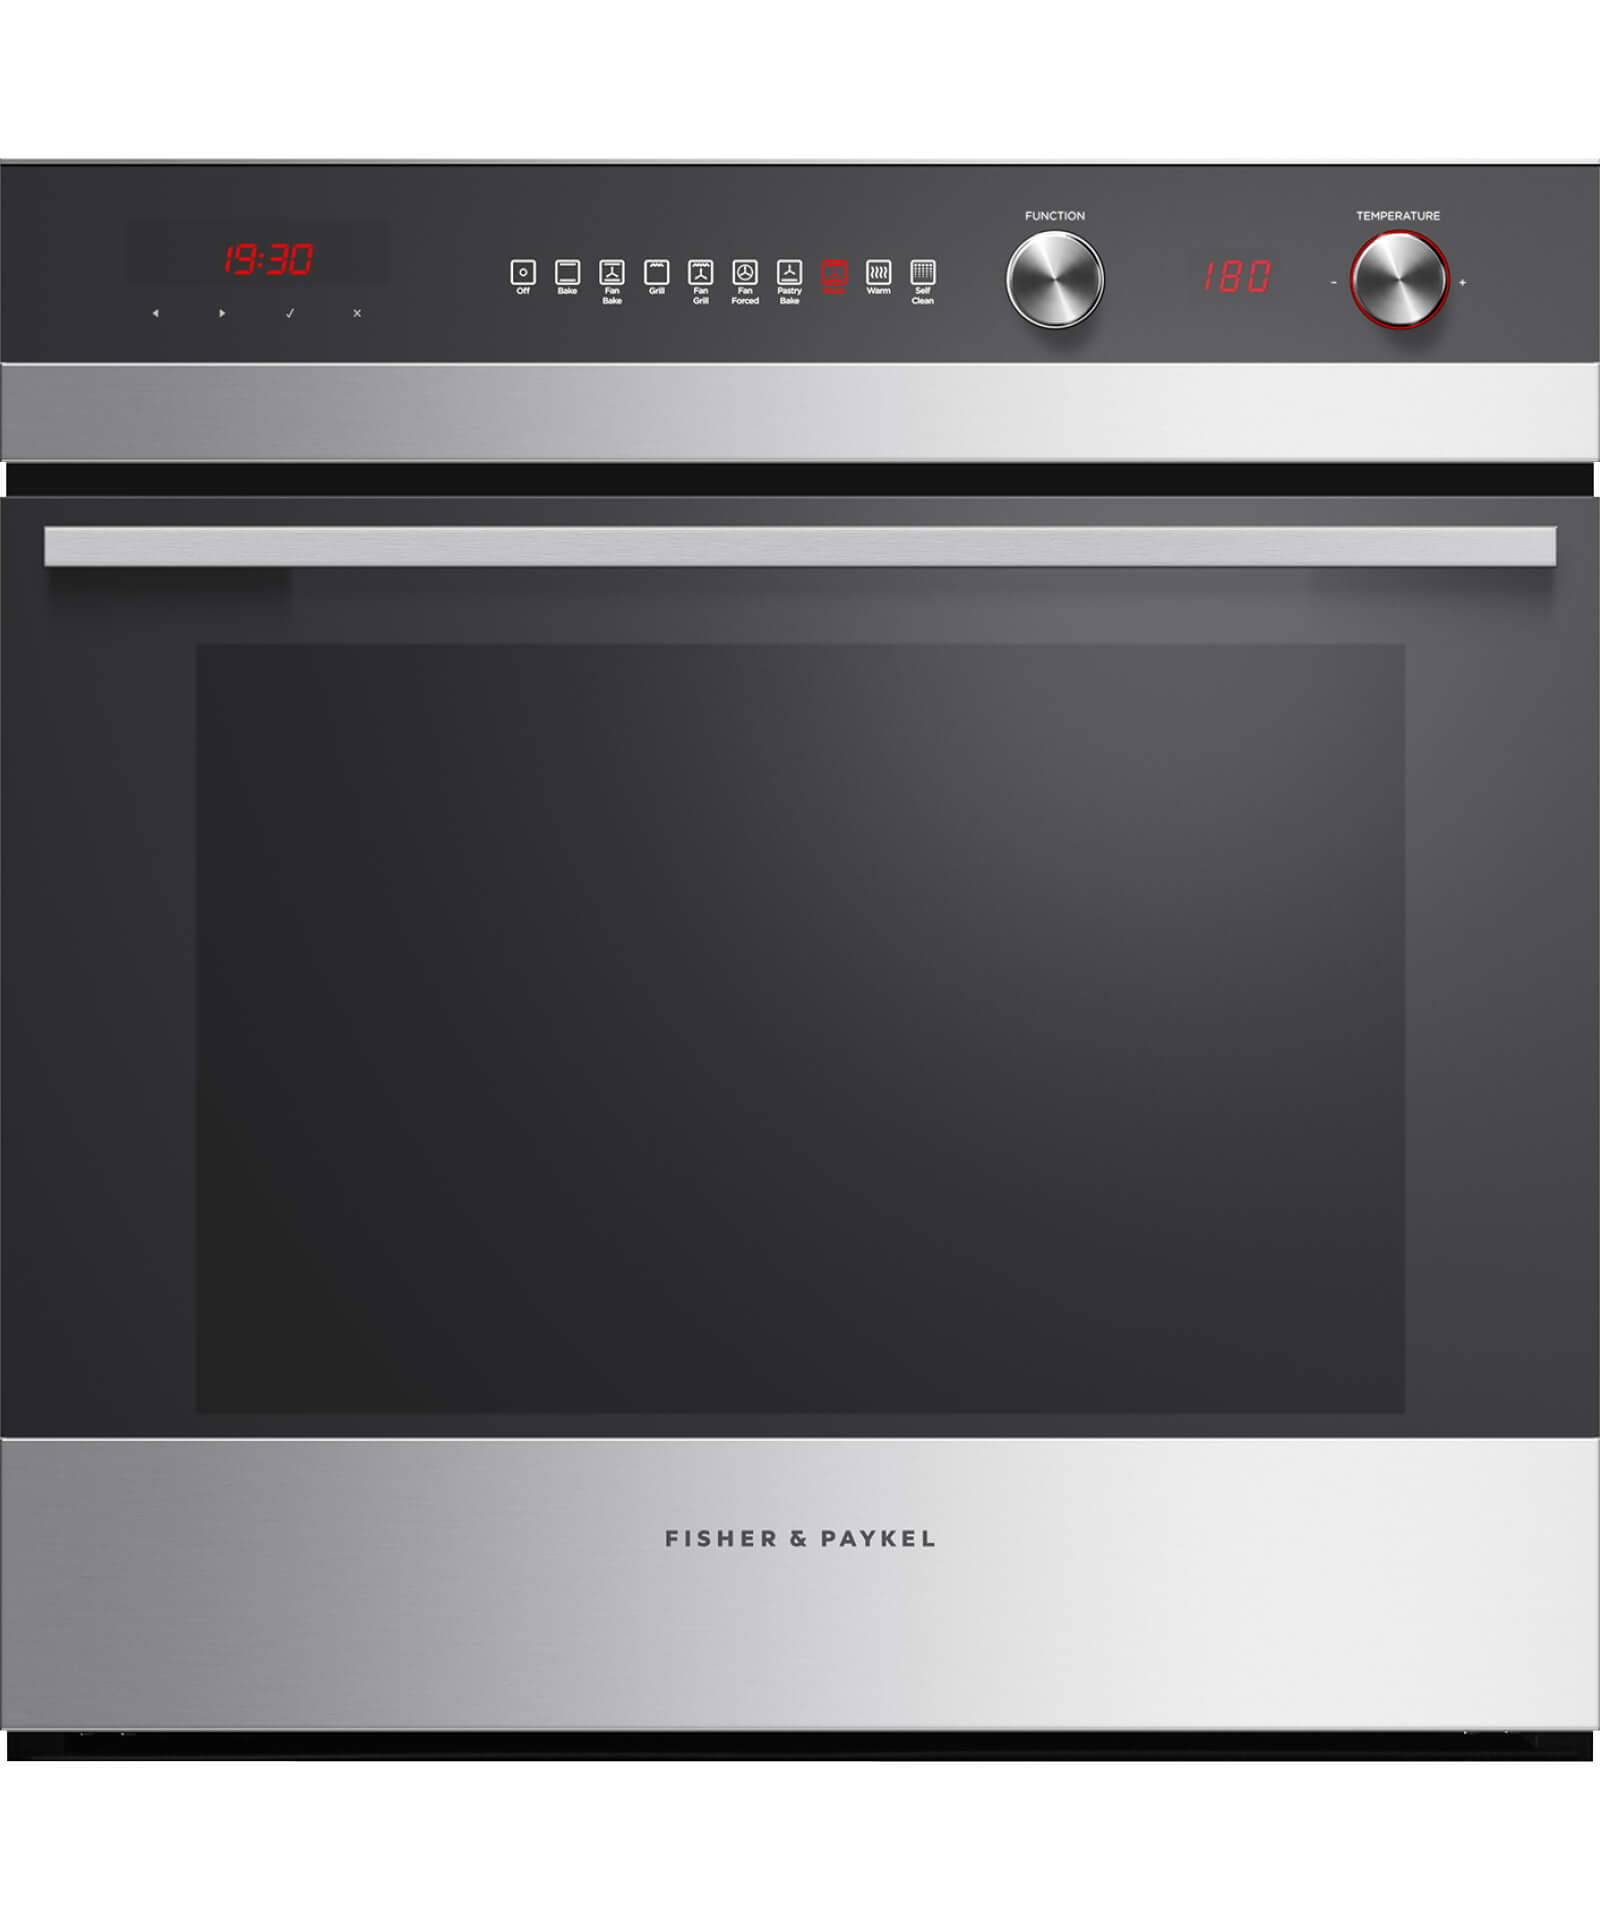 OB60SC9DEPX1 - 60cm 9 Function Pyrolytic Built-in Oven - 81528